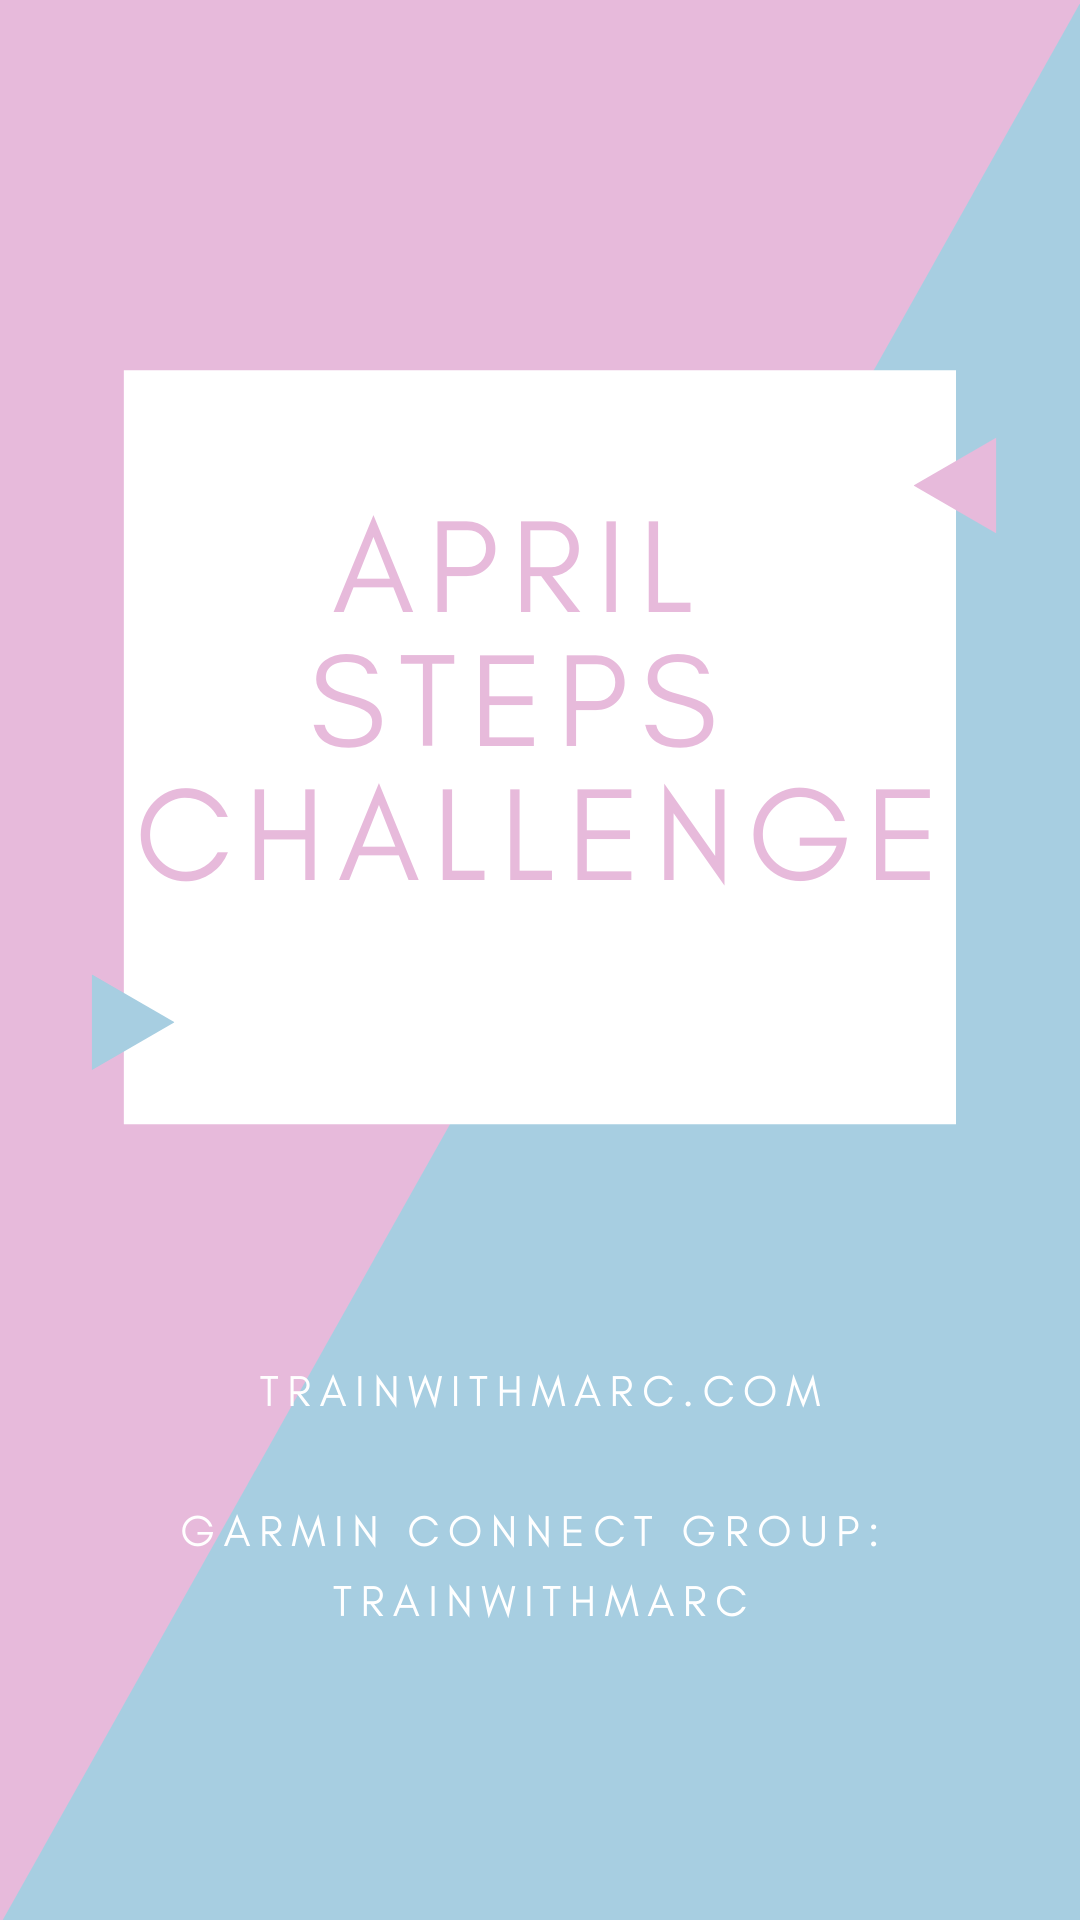 Sign up using Garmin Connect. Track your steps. Win prizes throughout the month.